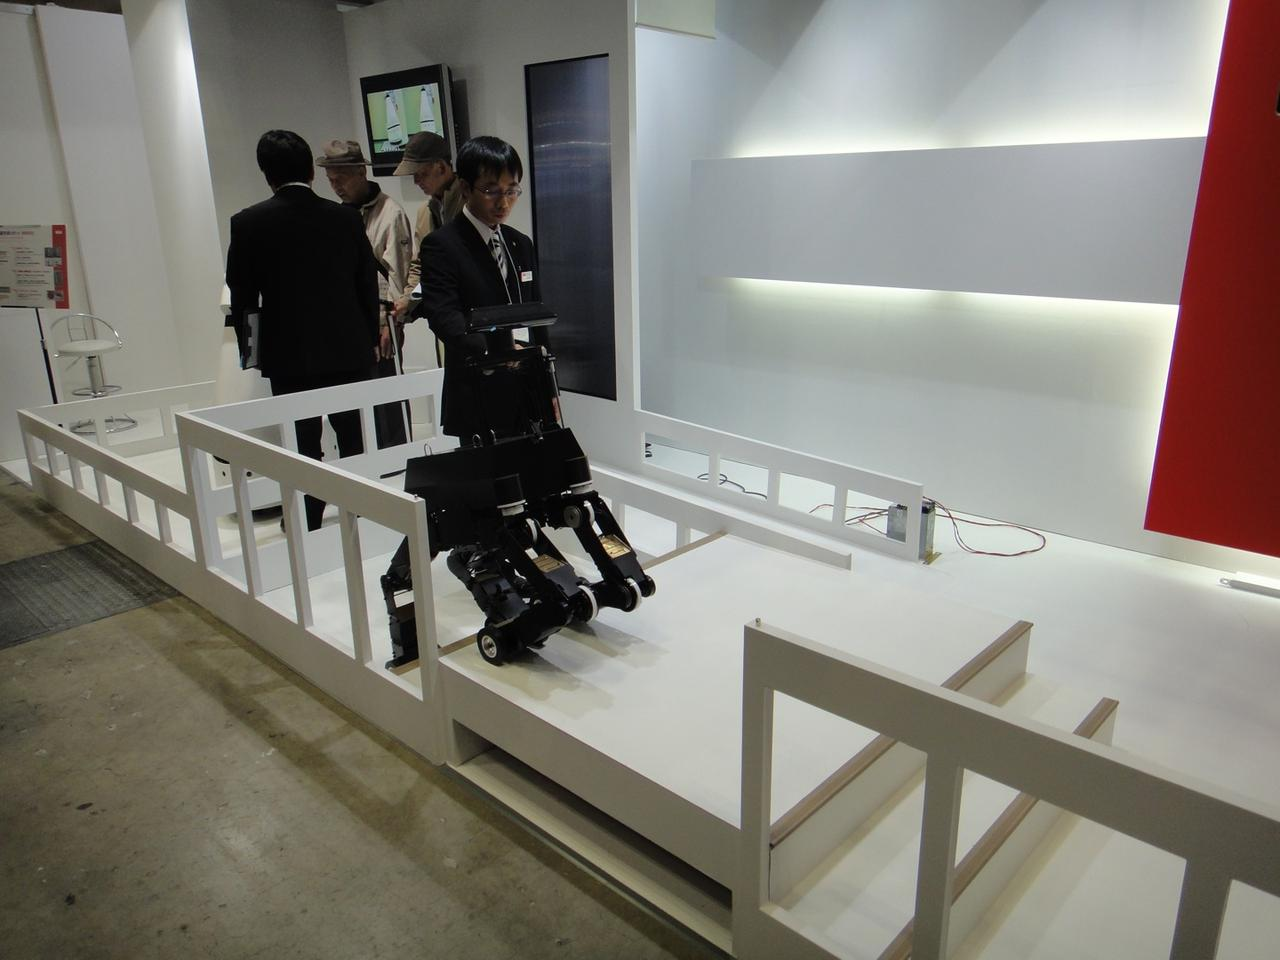 The NSK robot guide dog climbs stairs(Image: DigInfo)